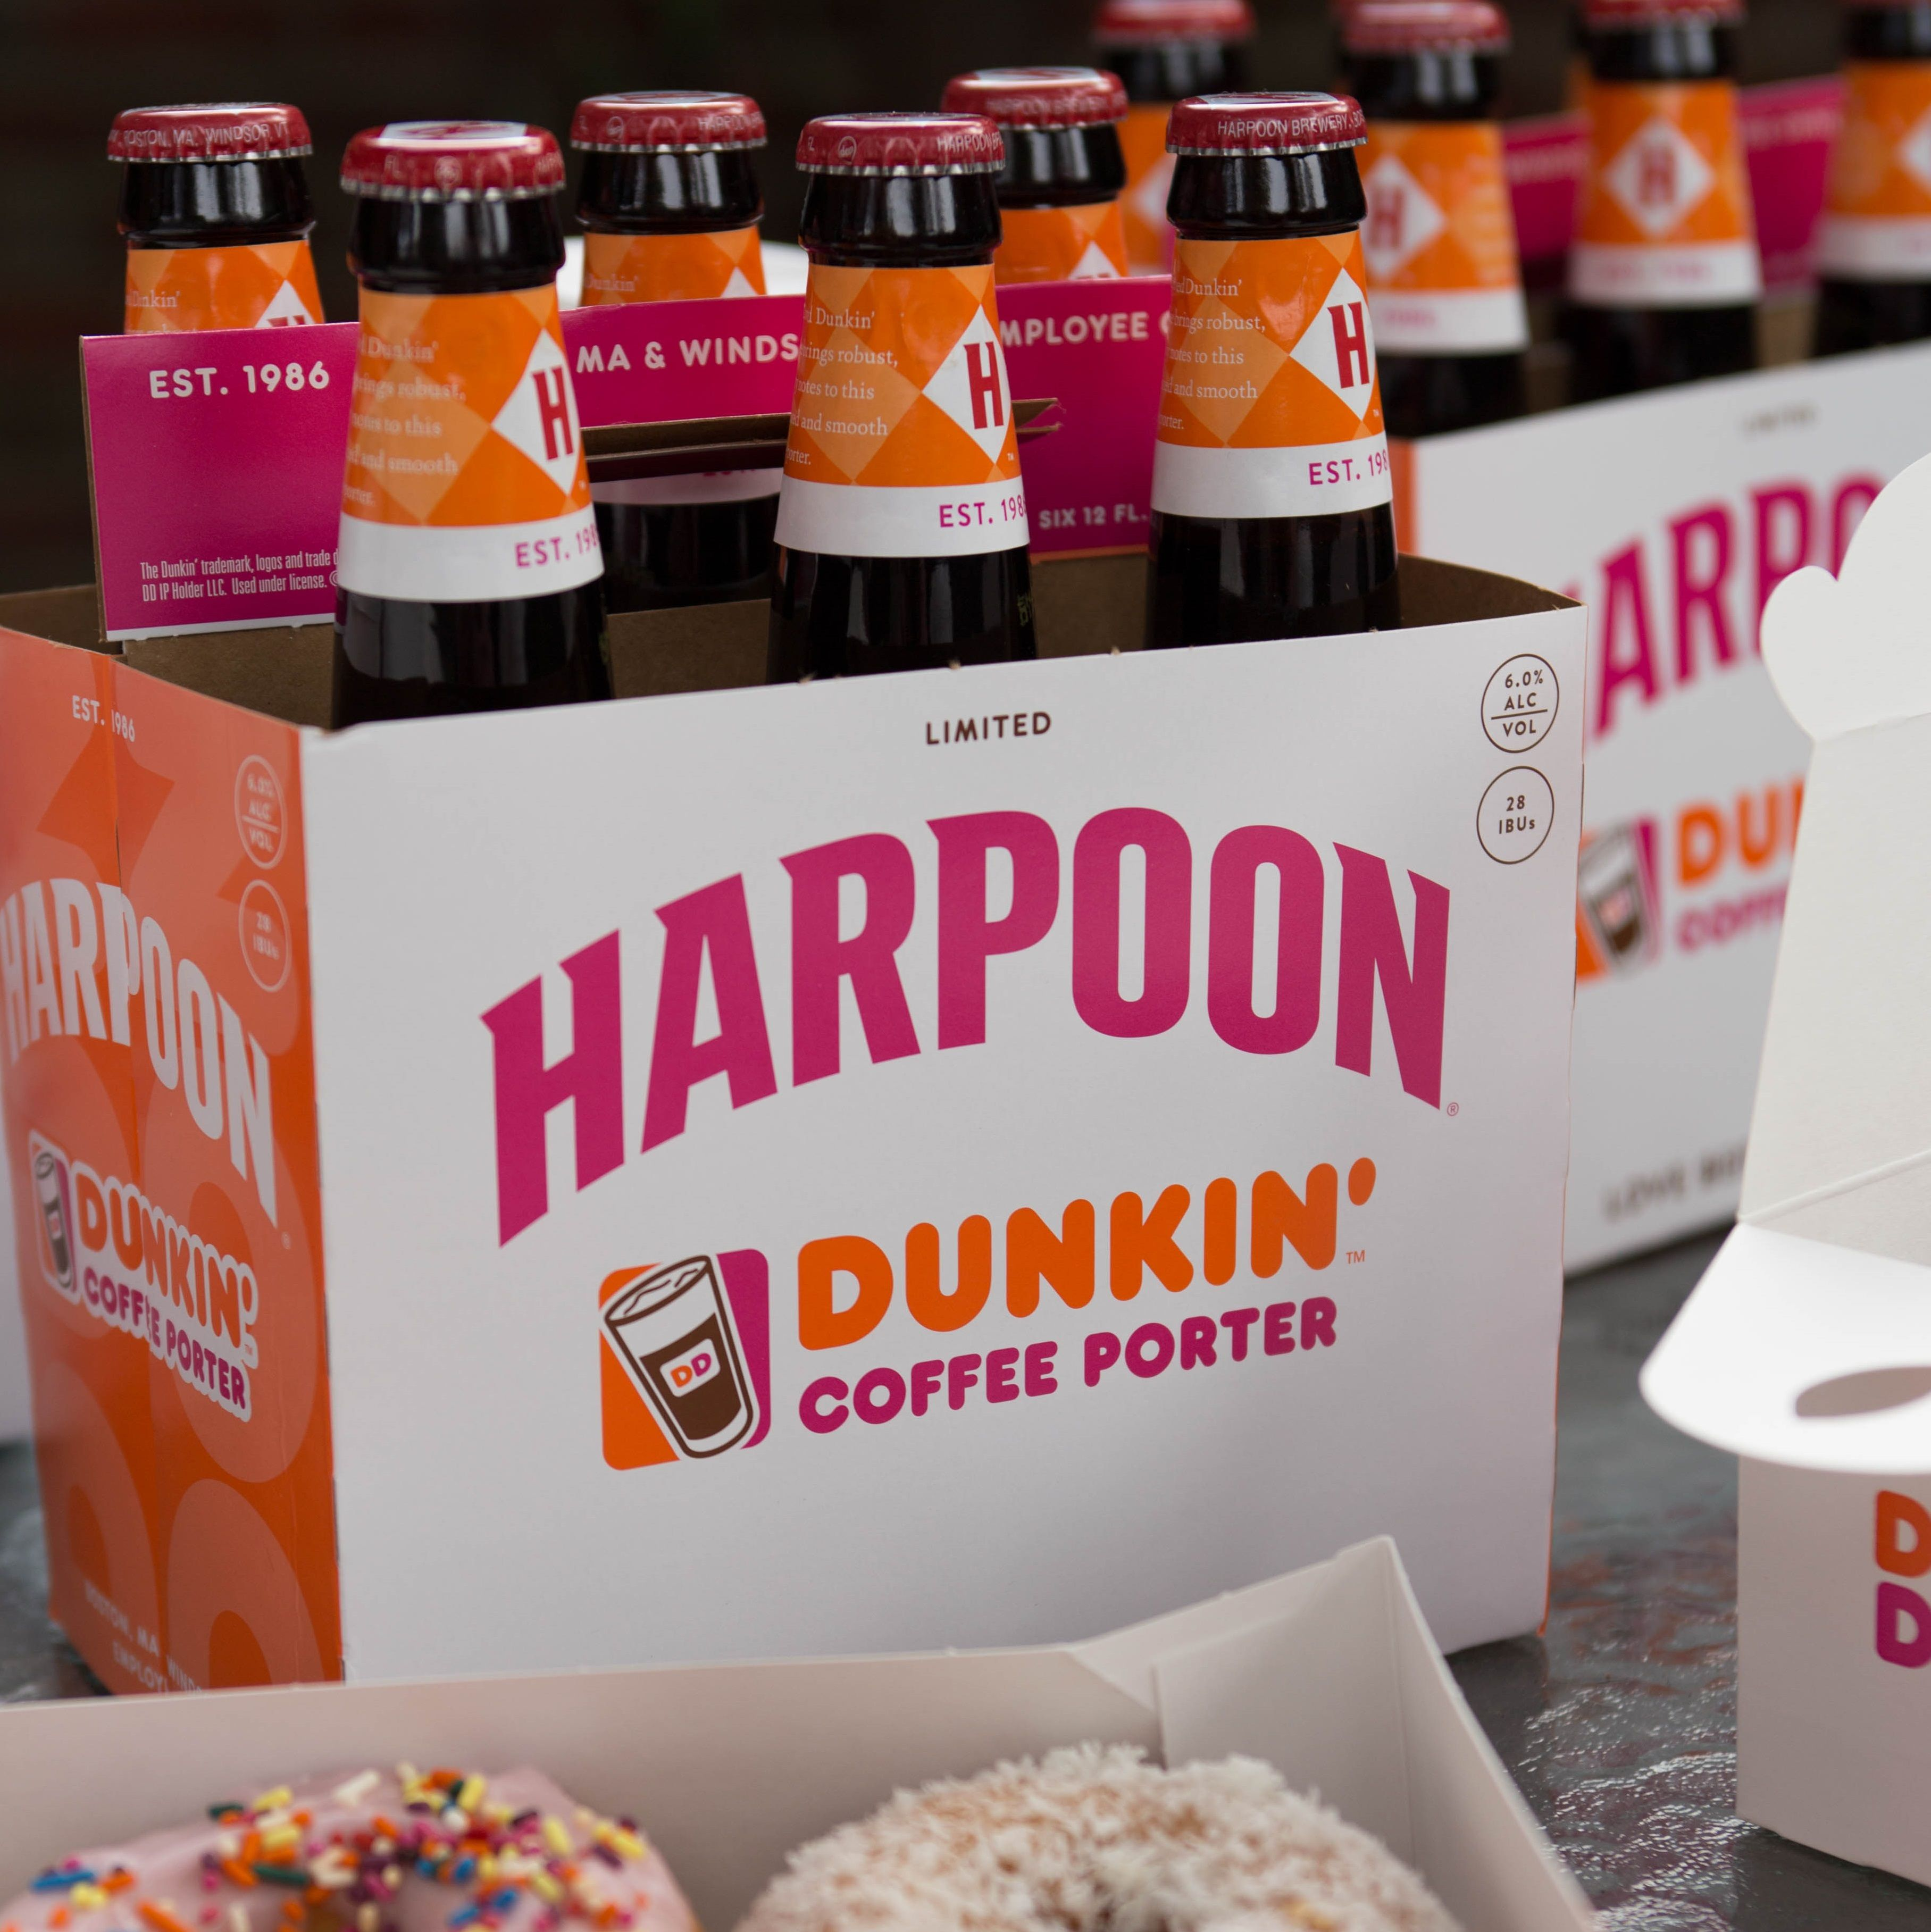 Dunkin' Finally Gets Its Own Beer, And It Goes Perfectly